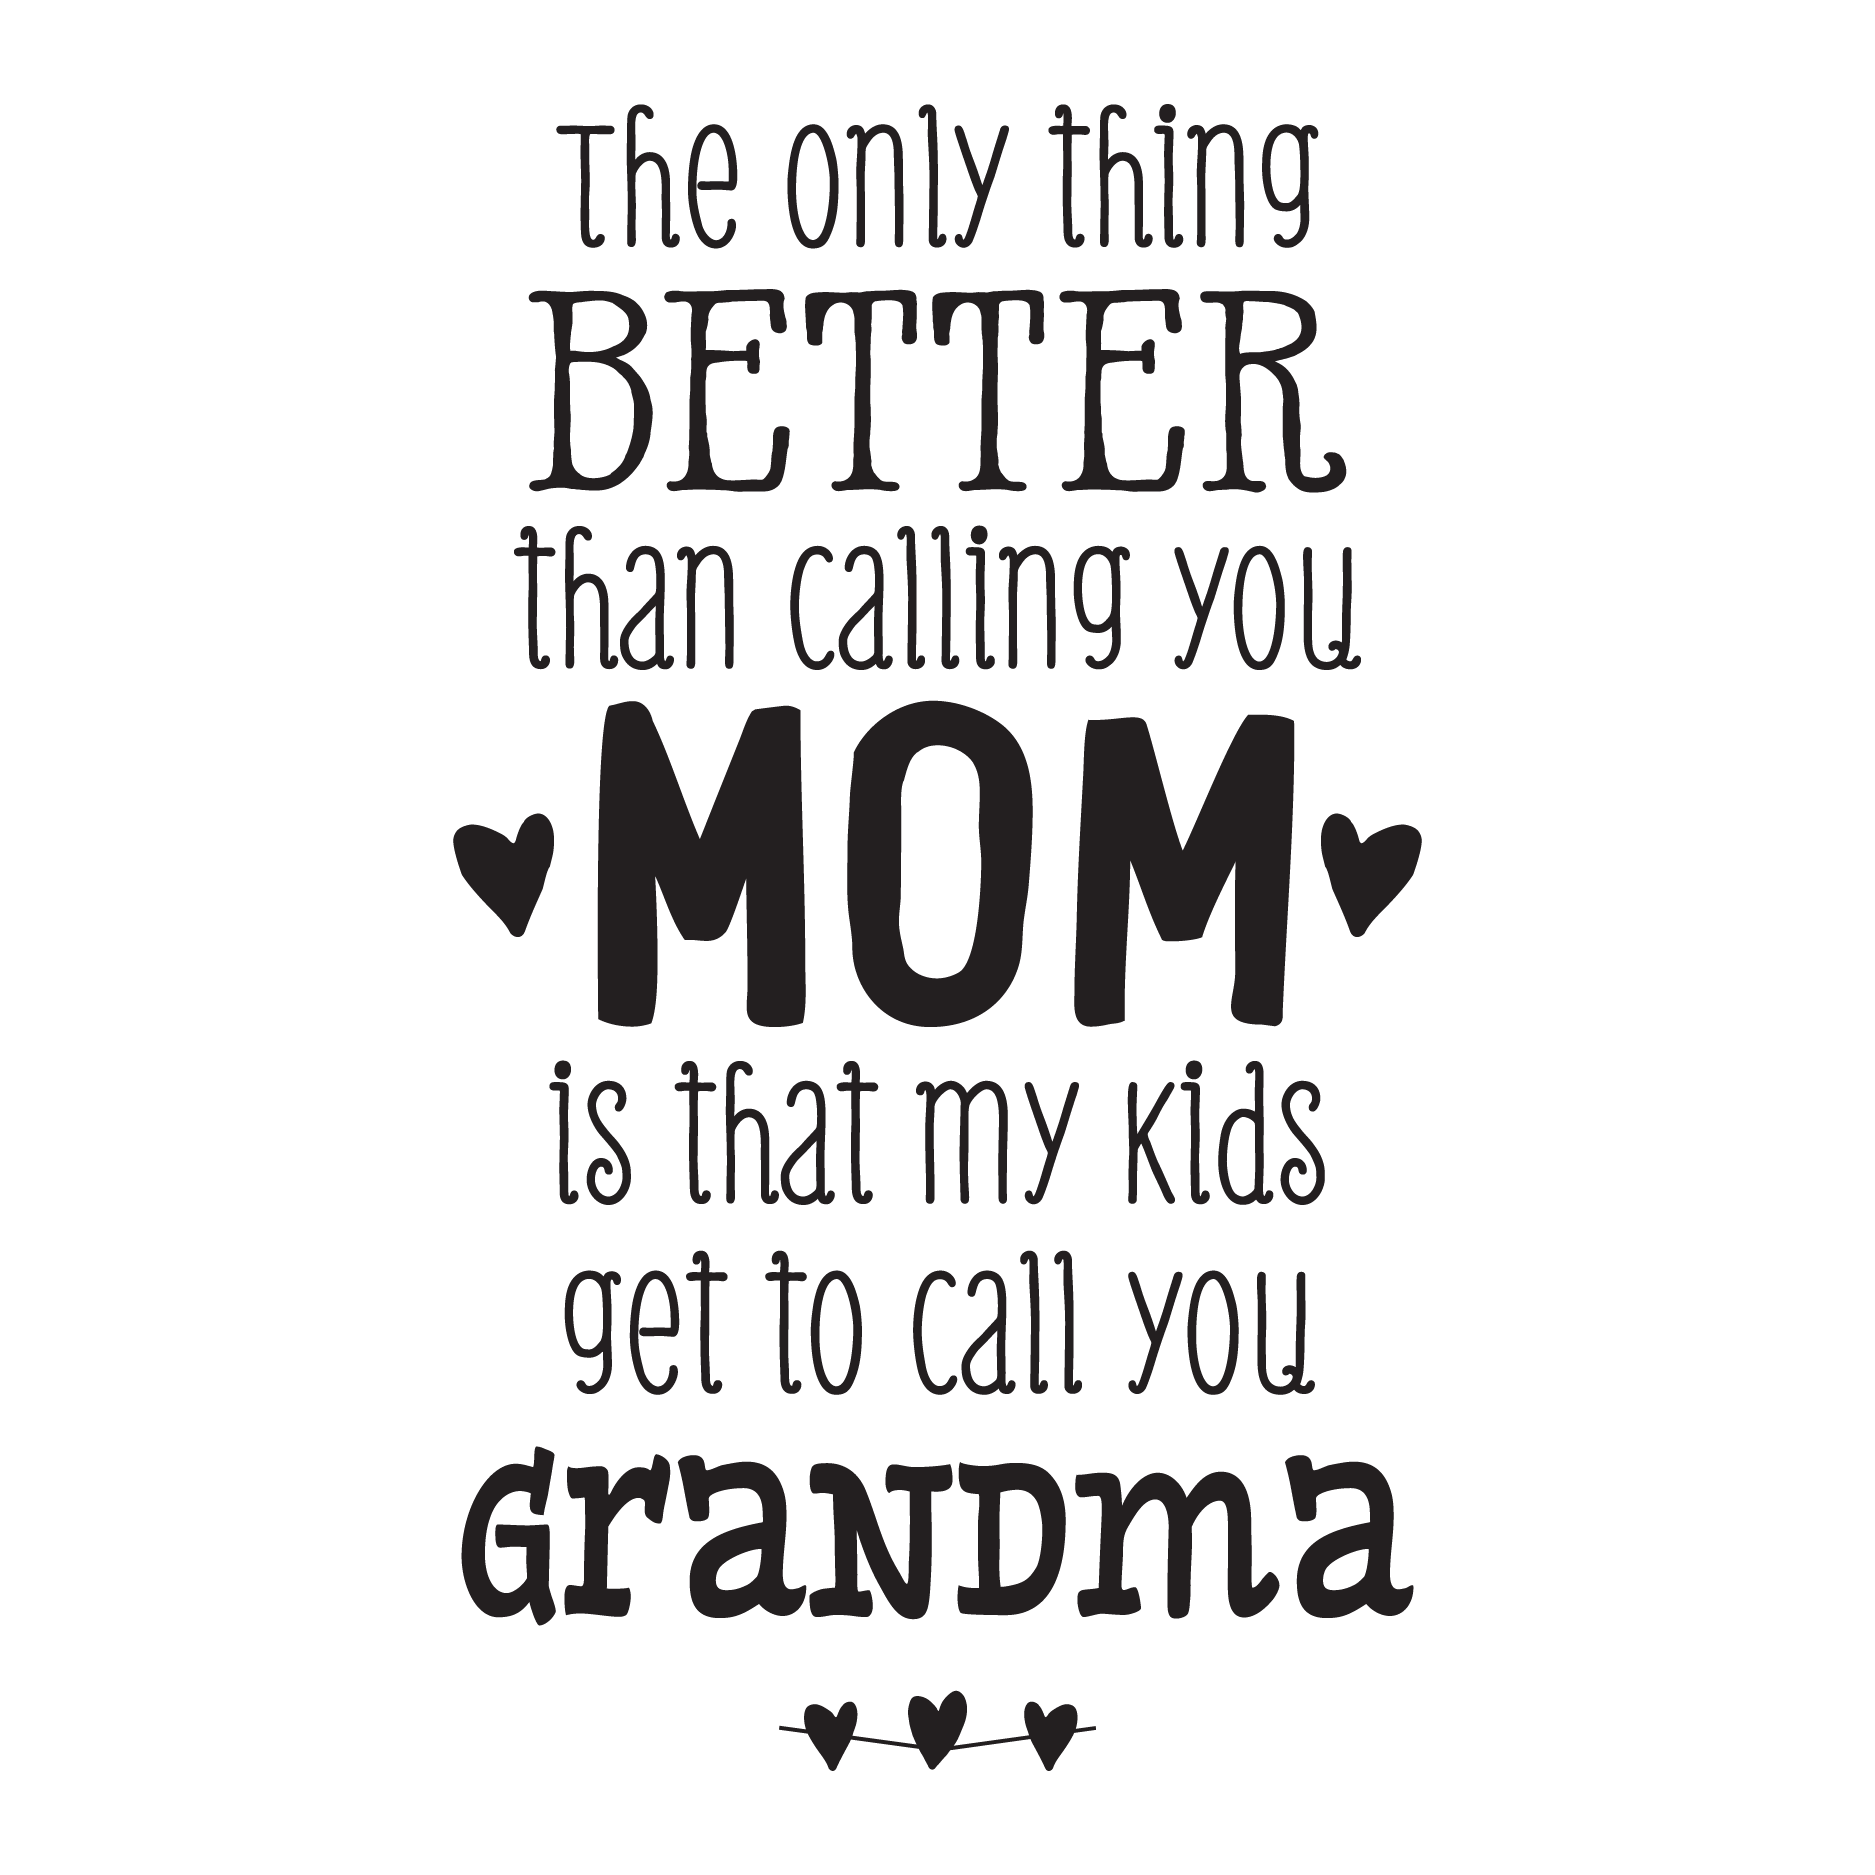 my kids call you grandma wall quotes u2122 decal